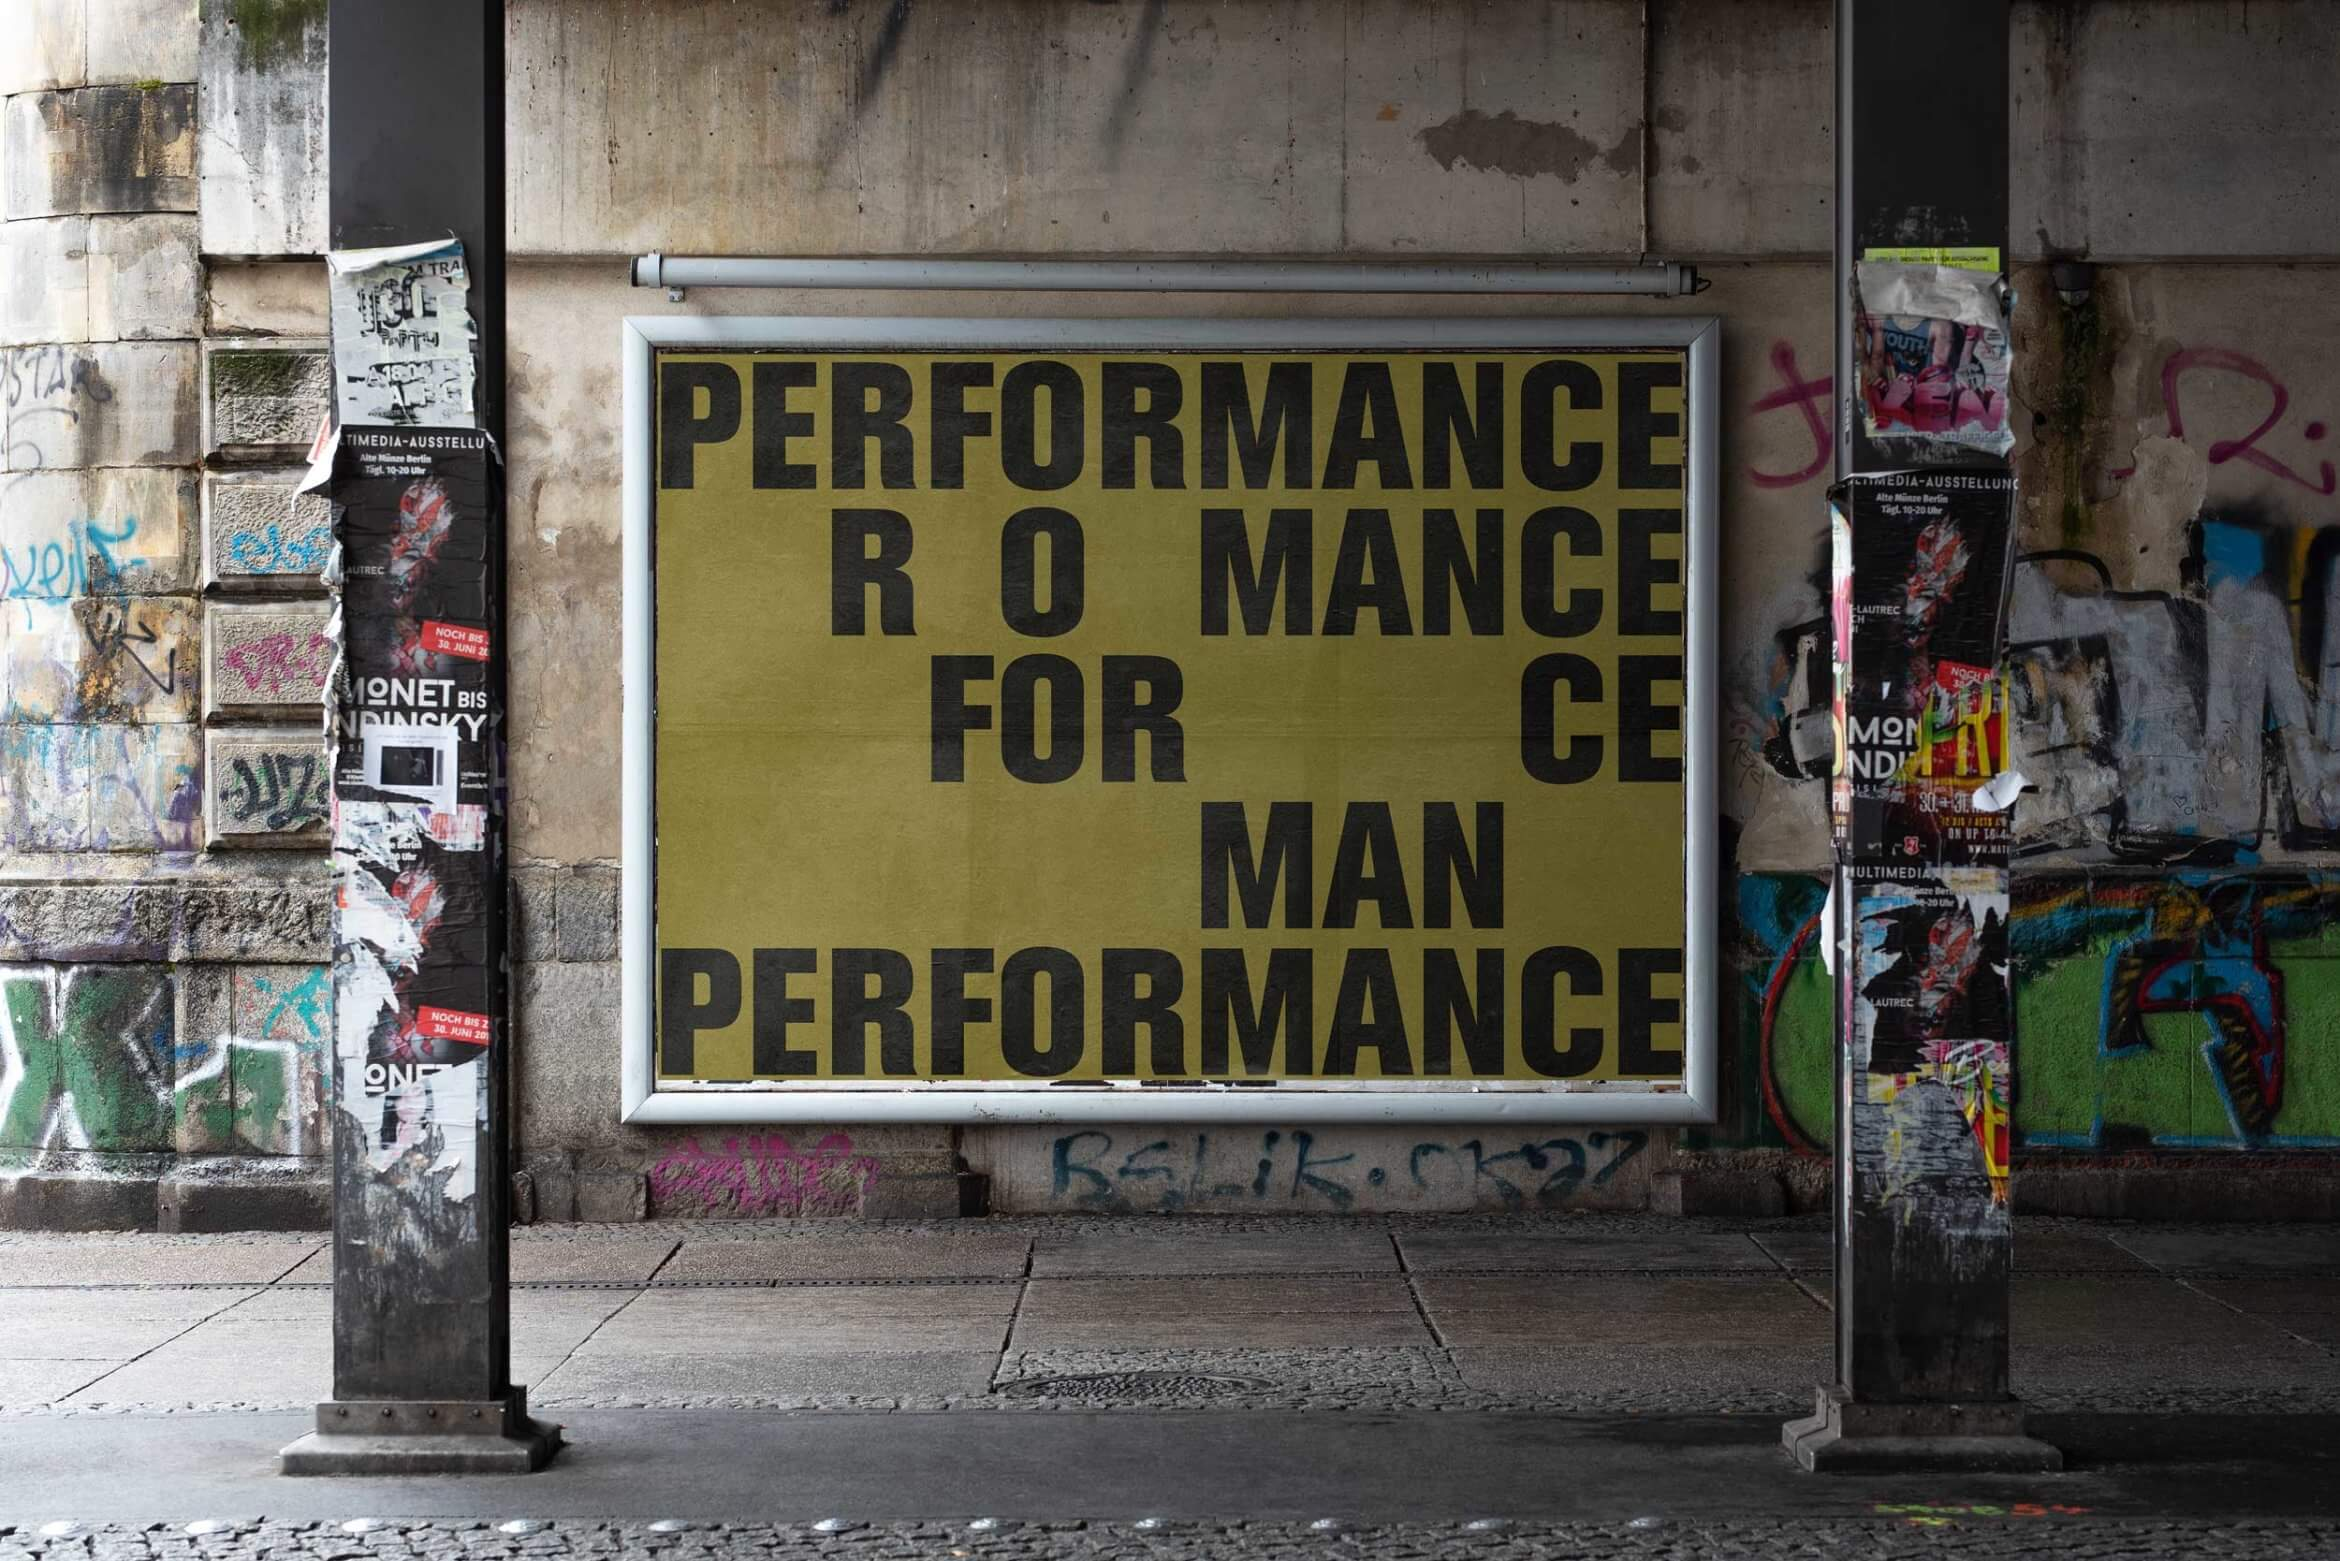 Artwork | Urban | Performance | Mensch | Textbased